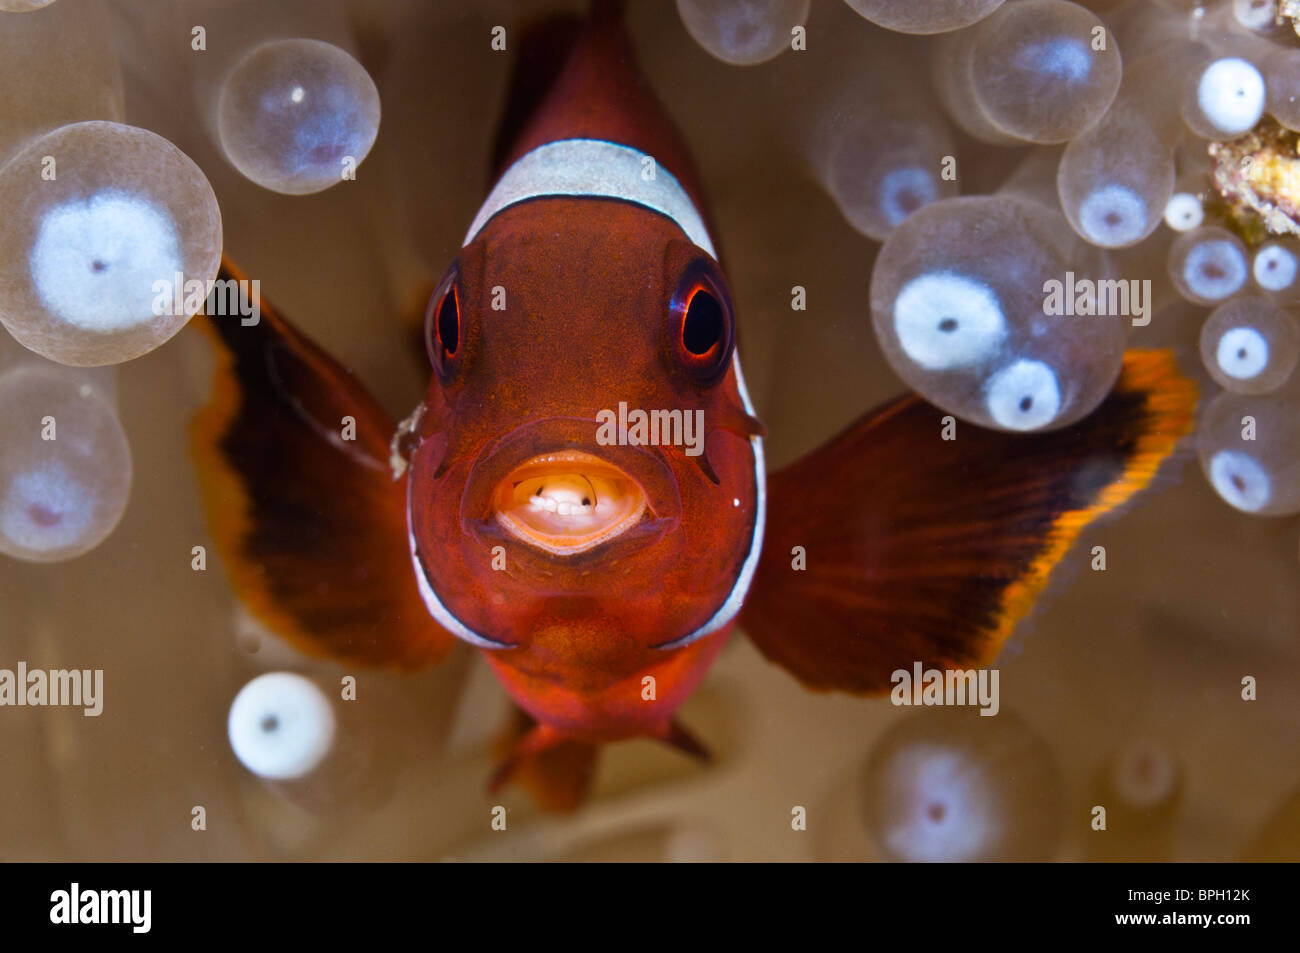 Spinecheek anemonefish with a Cymothoa parasite in its mouth, Lembeh Strait, Sulawesi, Indonesia. - Stock Image